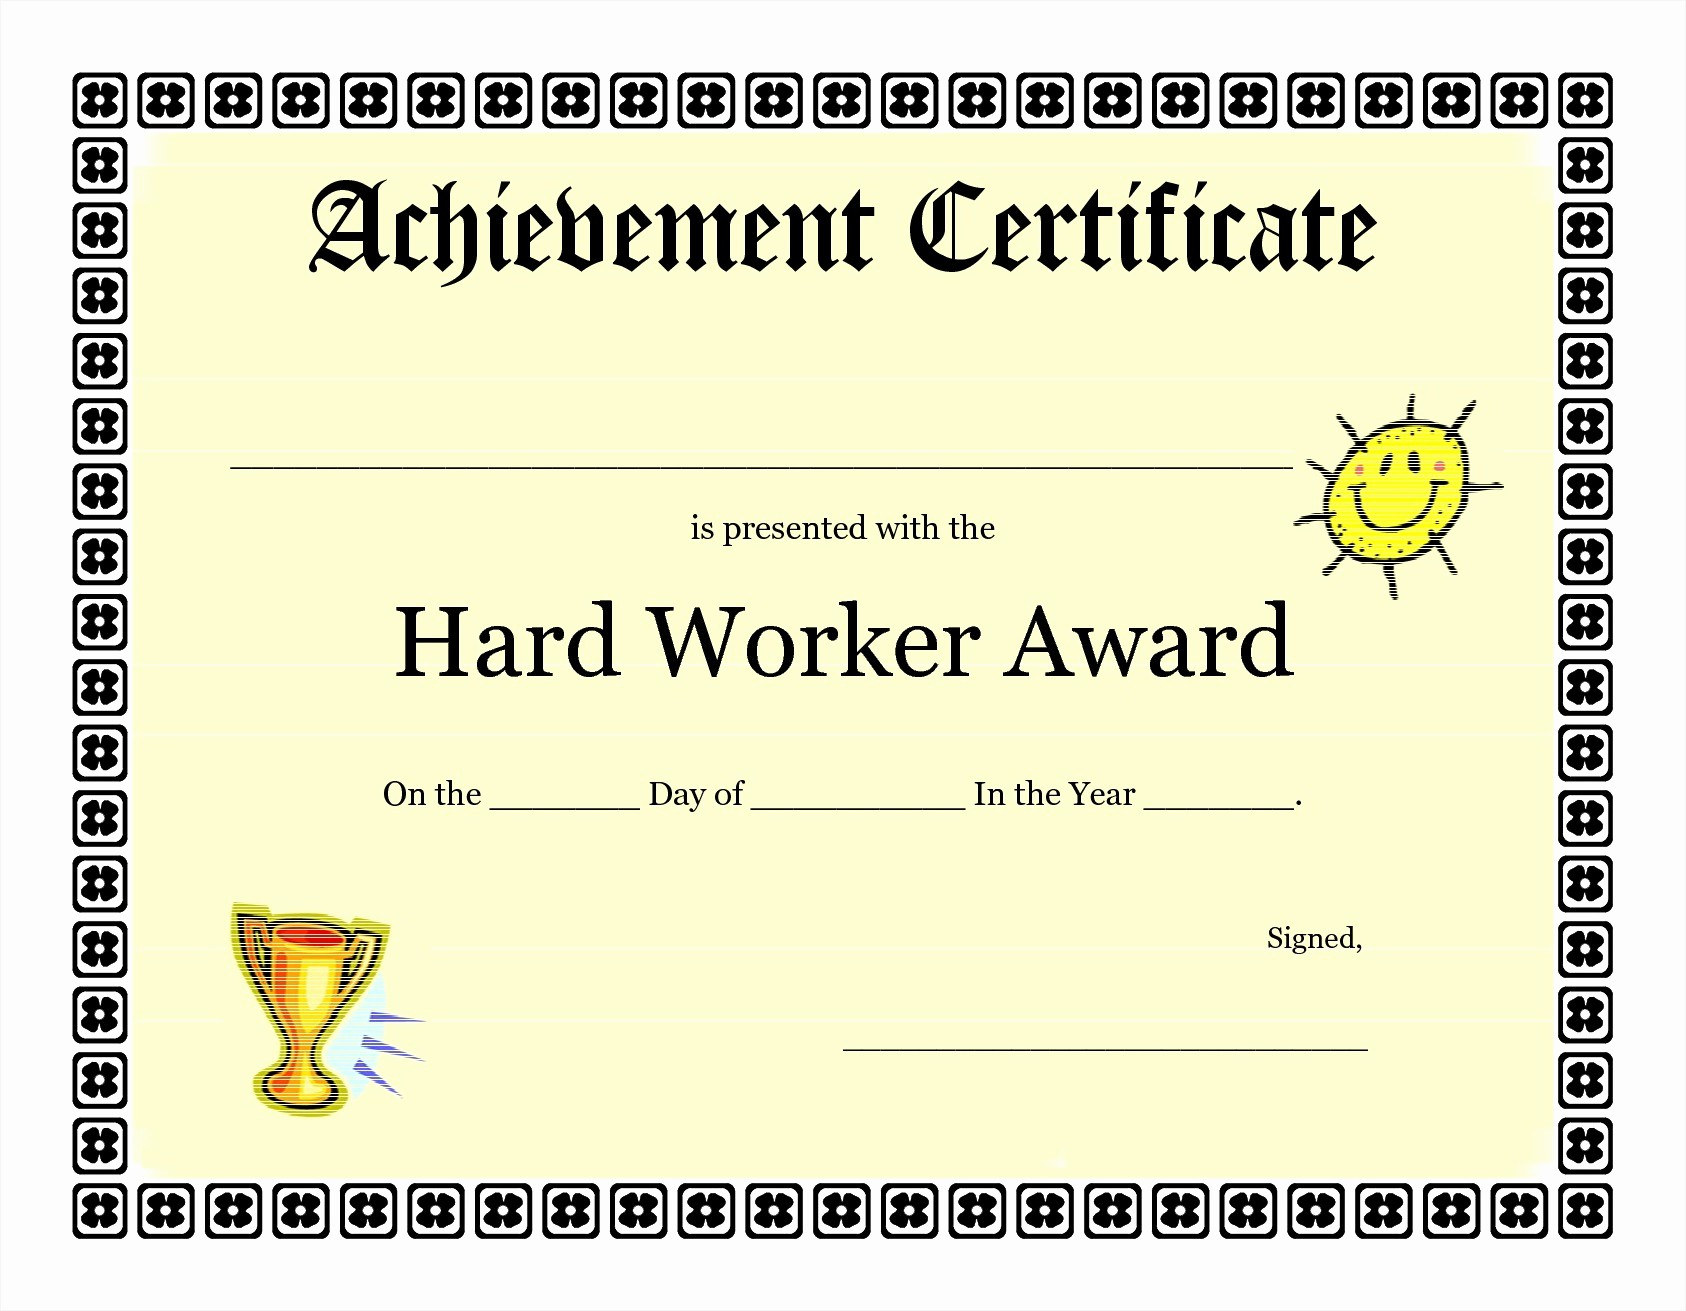 Certificates Of Achievement Templates Free Elegant Achievement Certificate Templates Free Mughals